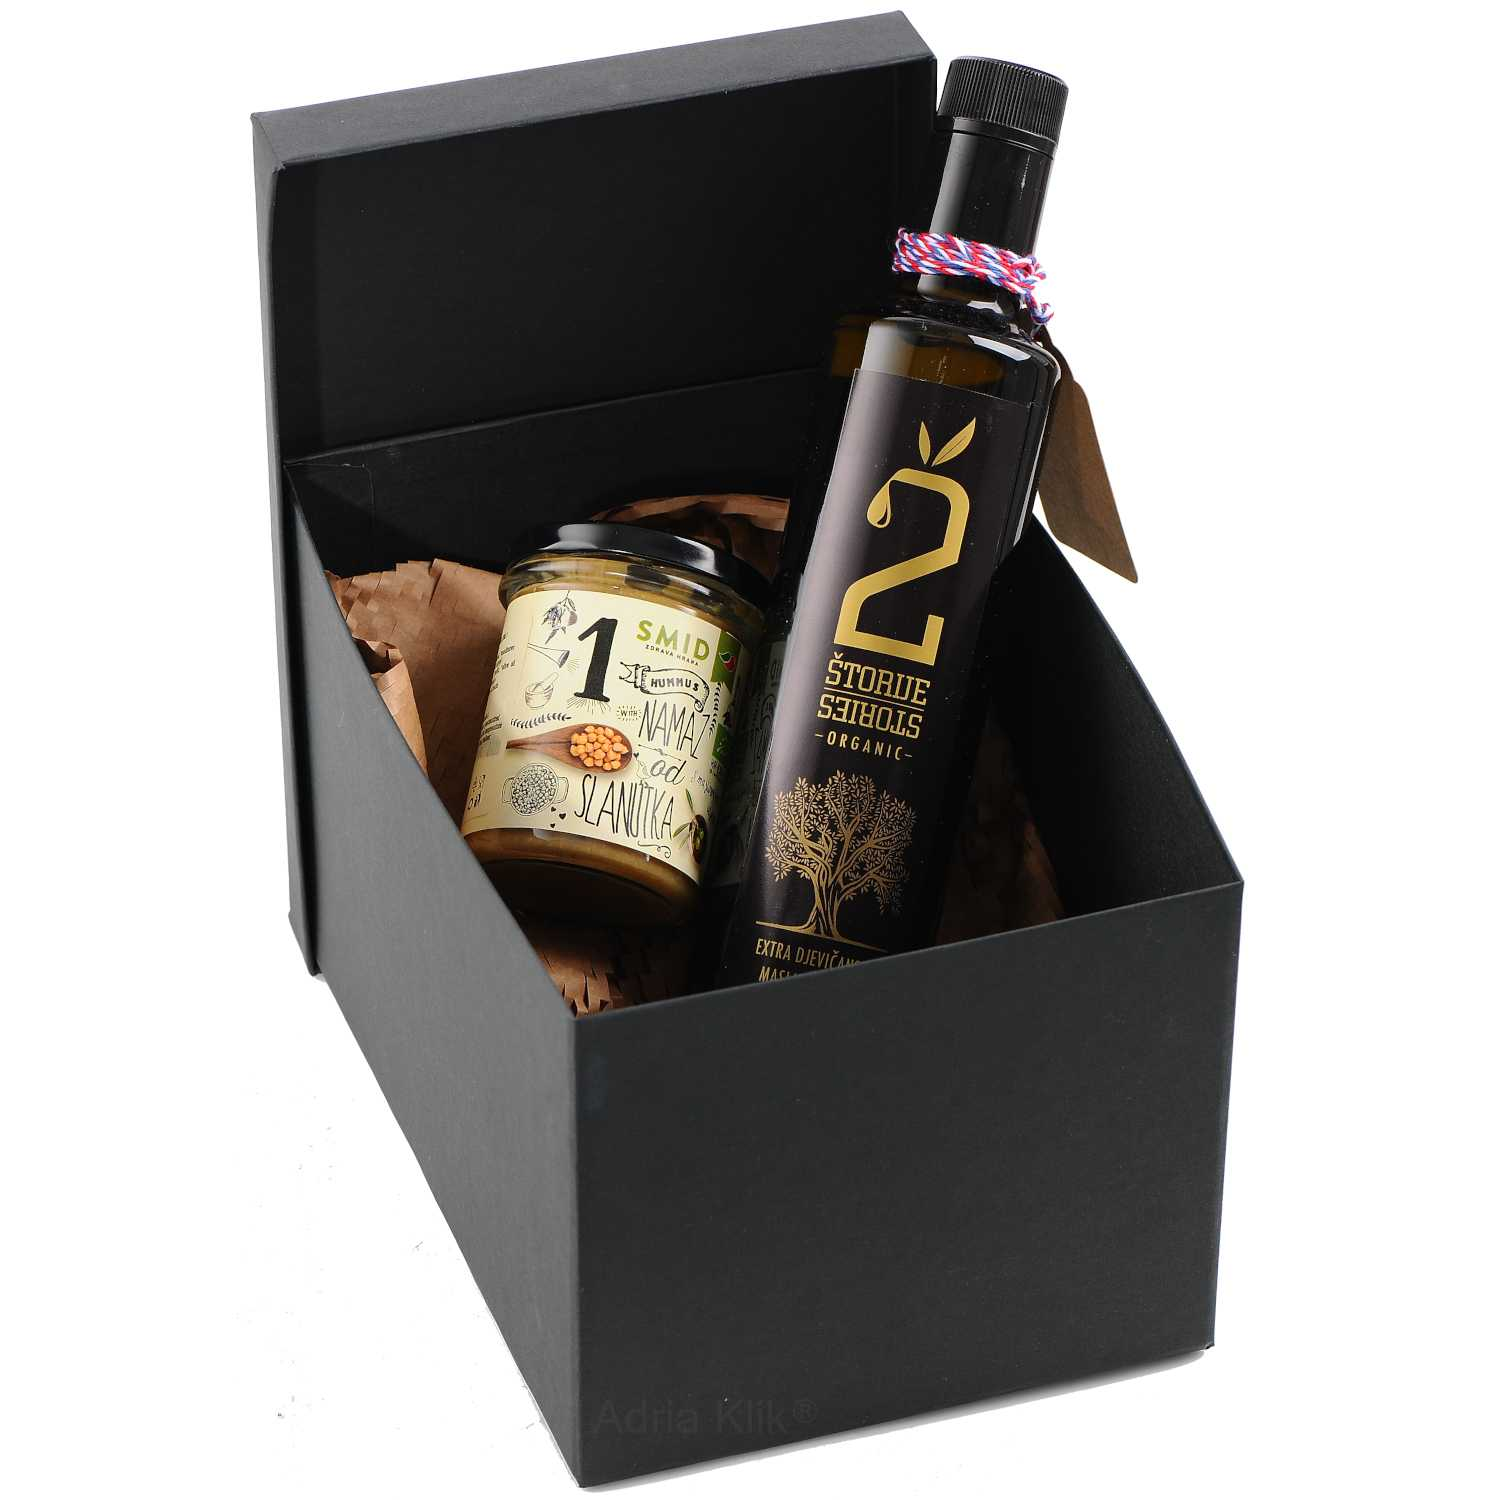 Organic Eko Extra Virgin Olive Oil 0,5l 2Štorije Eko Namaz od Slanutka Hummus Bio 210g. SMID Black gift box with top  Decoration